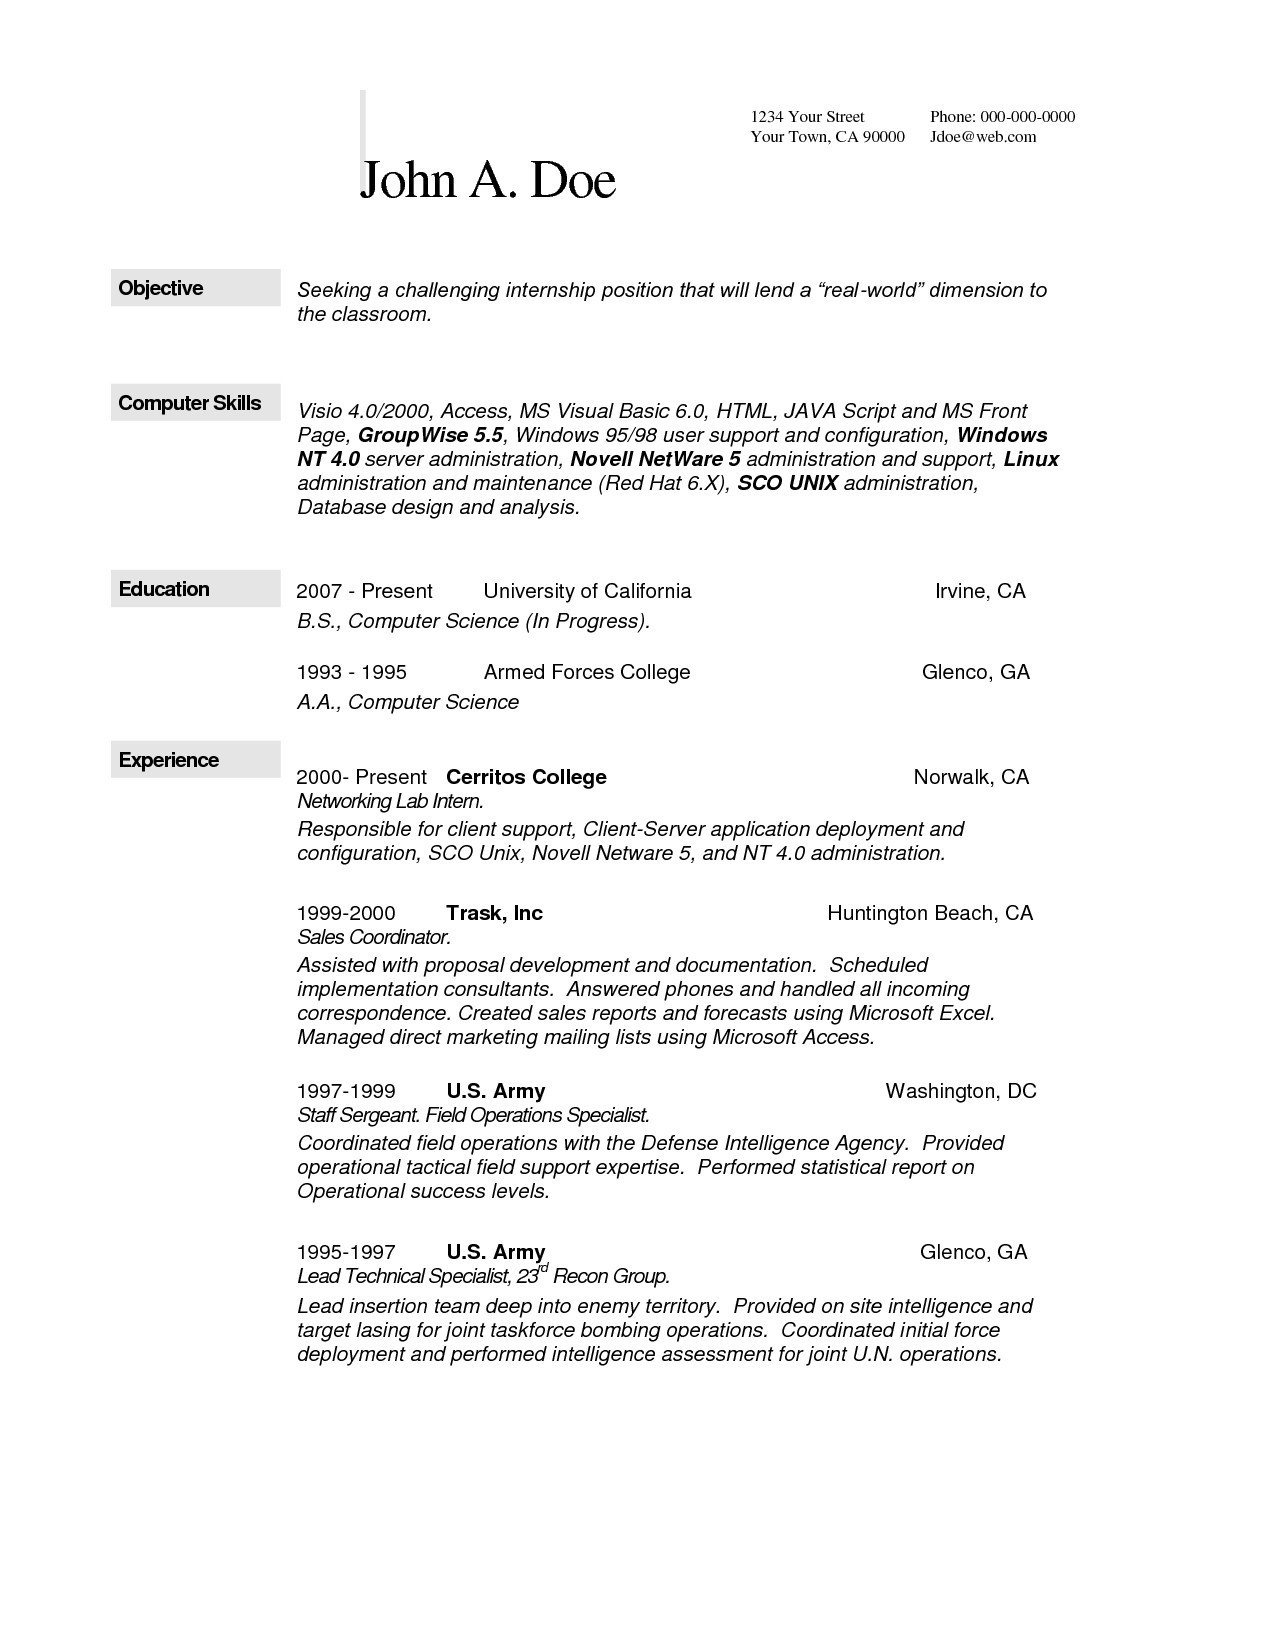 scientist resume examples example-Awesome Omputer Science Resume Example 11-o